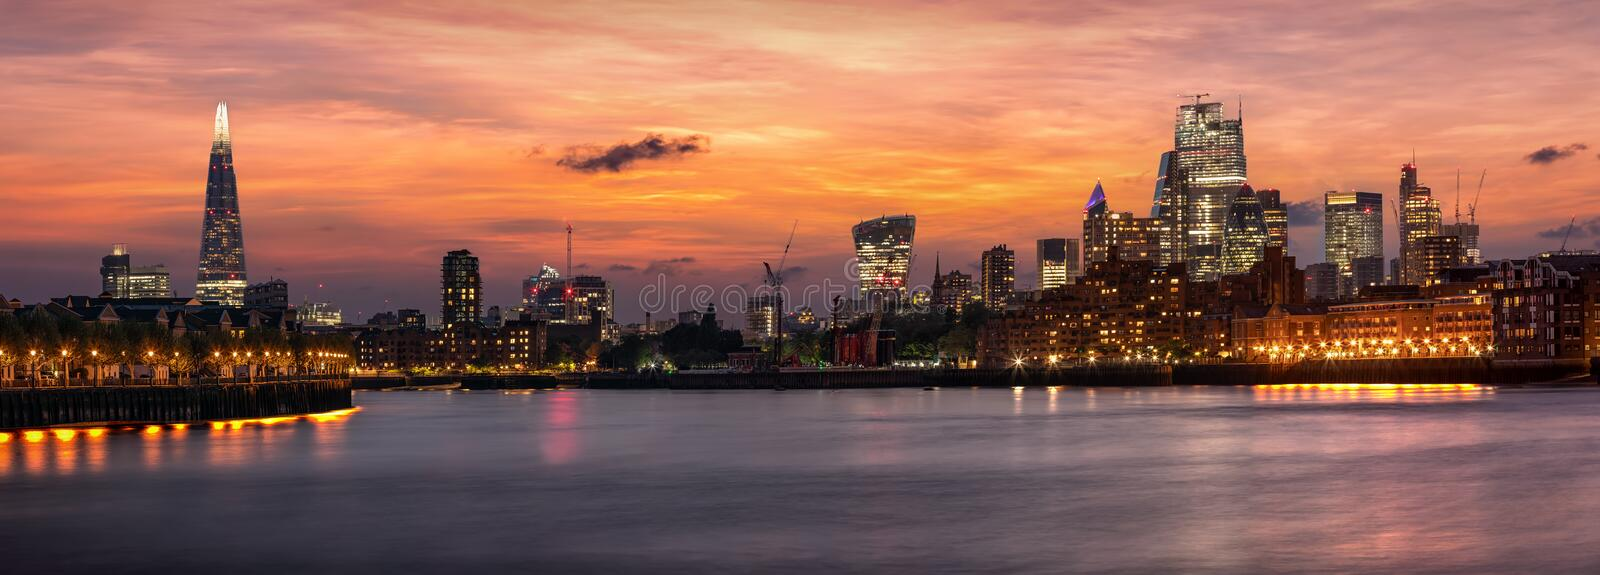 The iconic urban skyline of London, UK, after sunset time stock photo